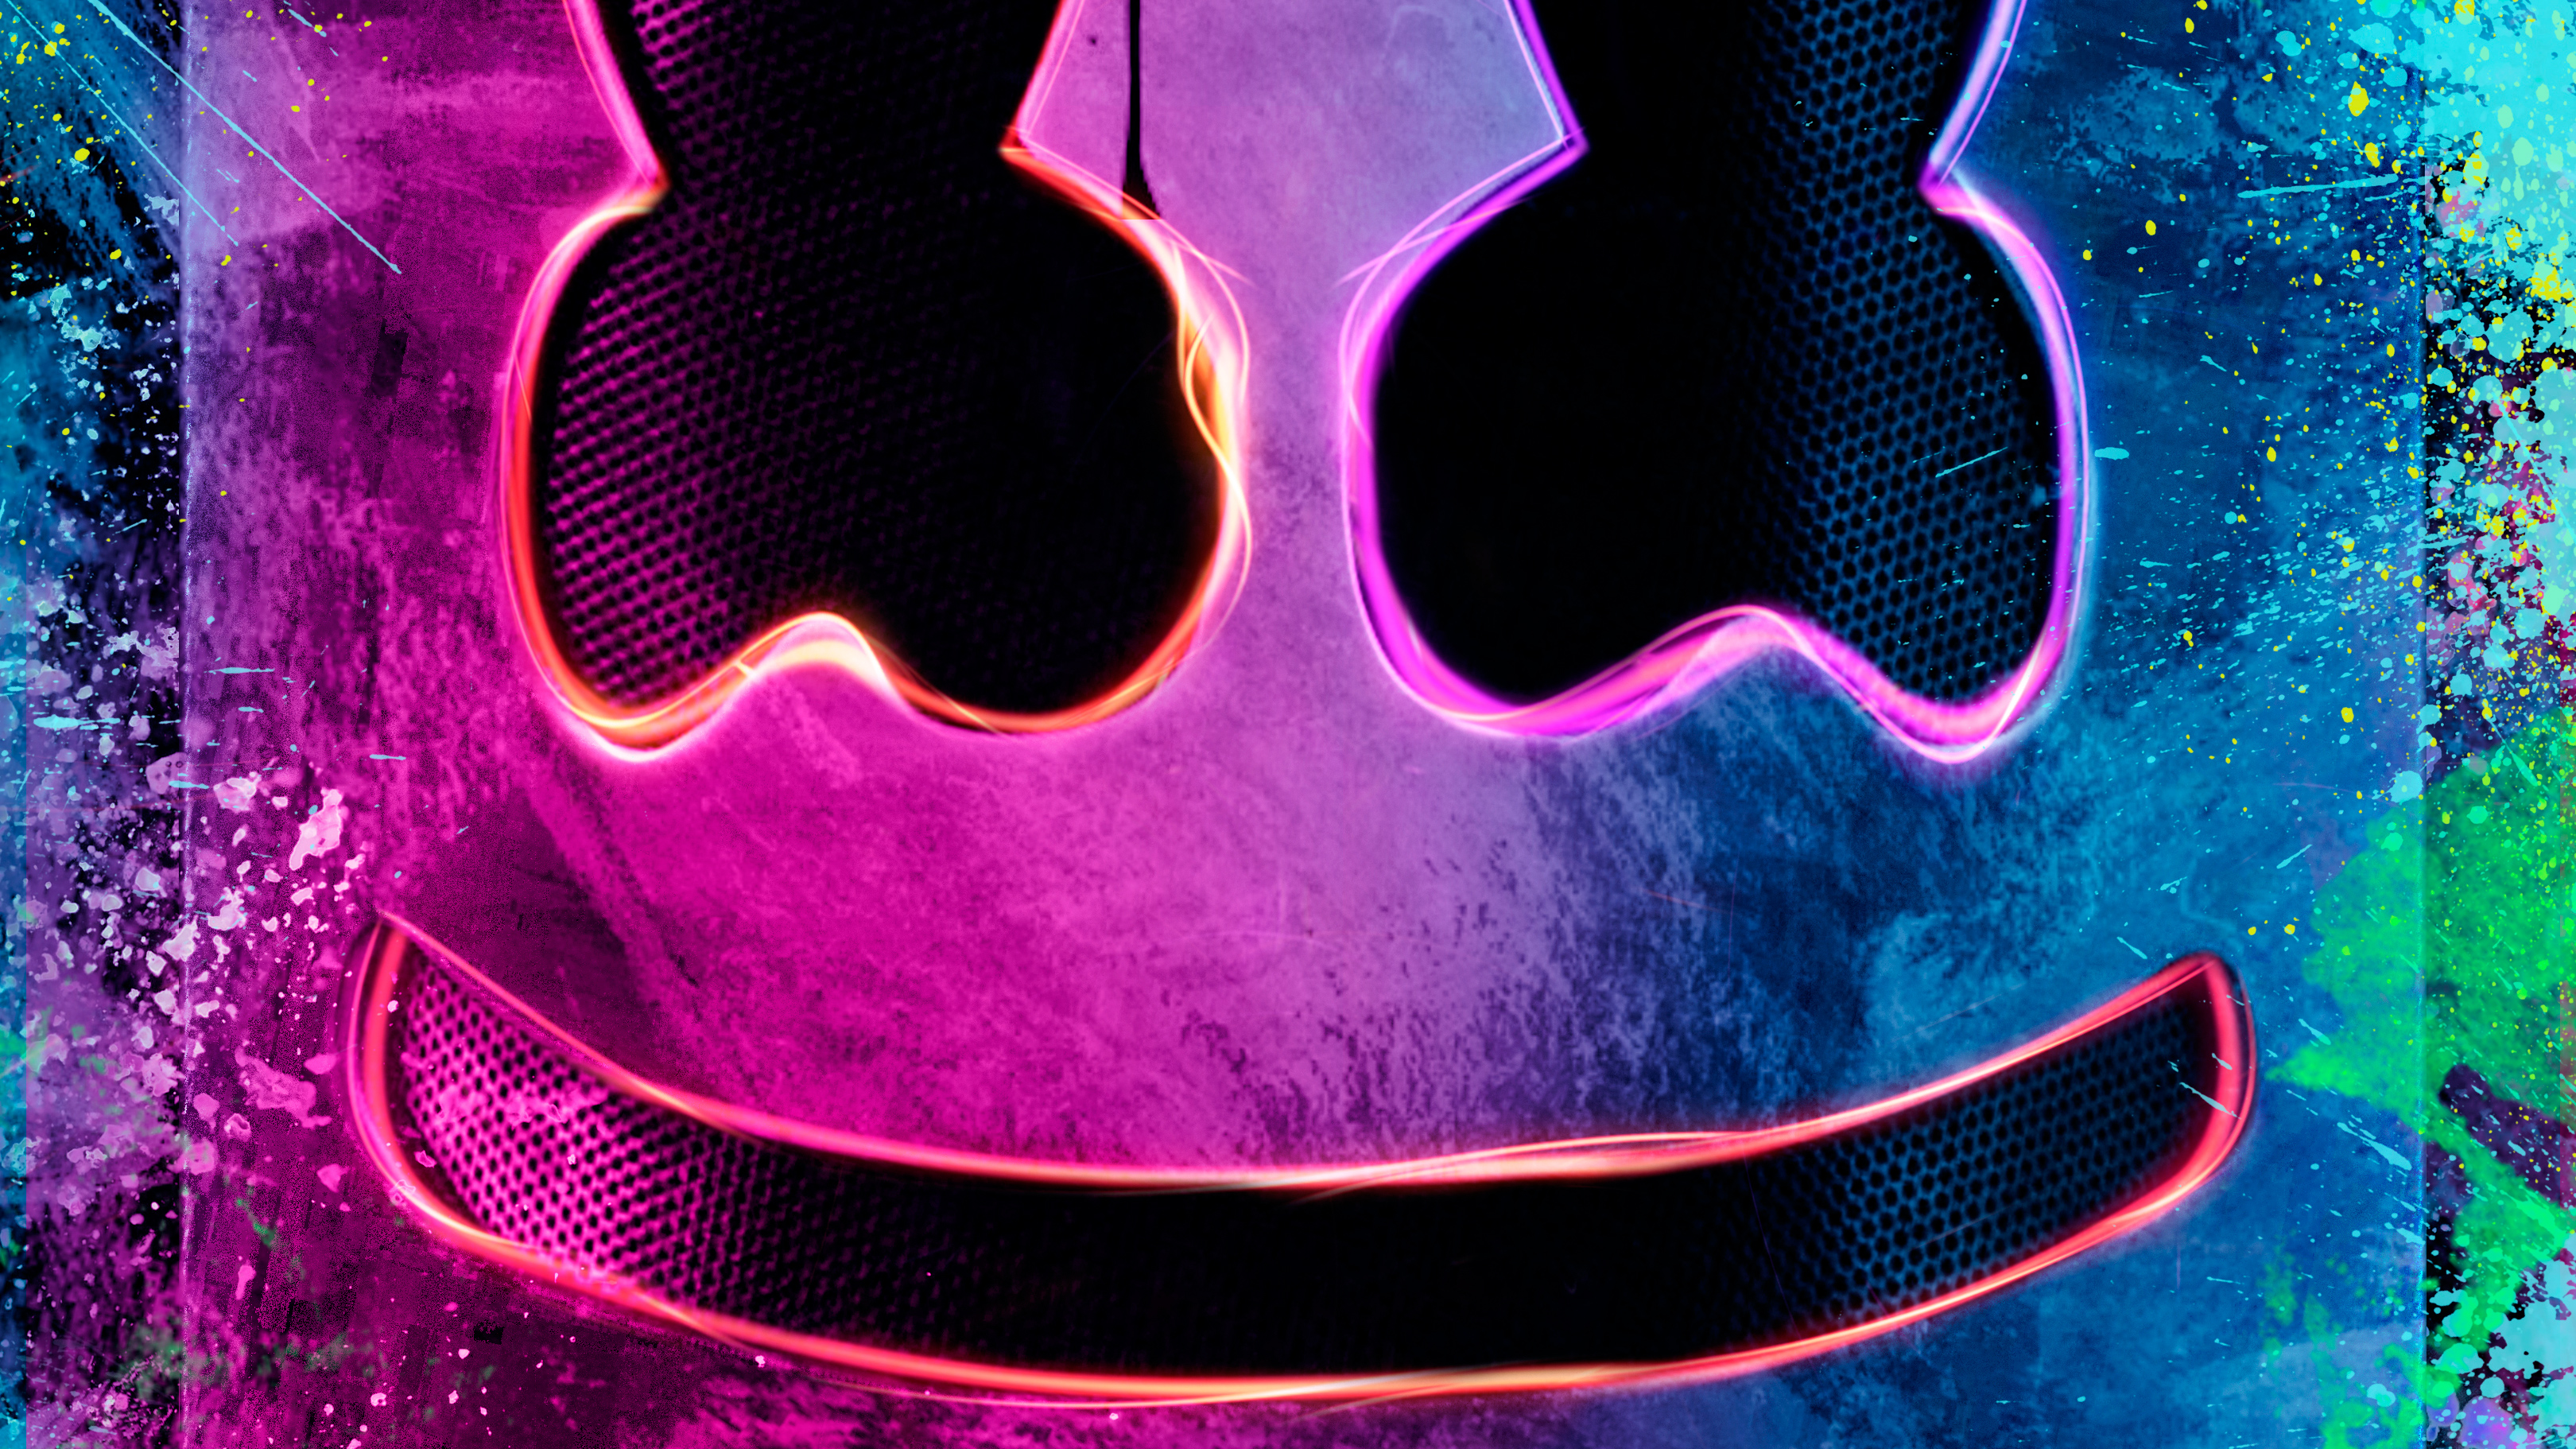 Neon marshmello helmet hd music 4k wallpapers images backgrounds photos and pictures - Descargar fotos hd 1080p ...